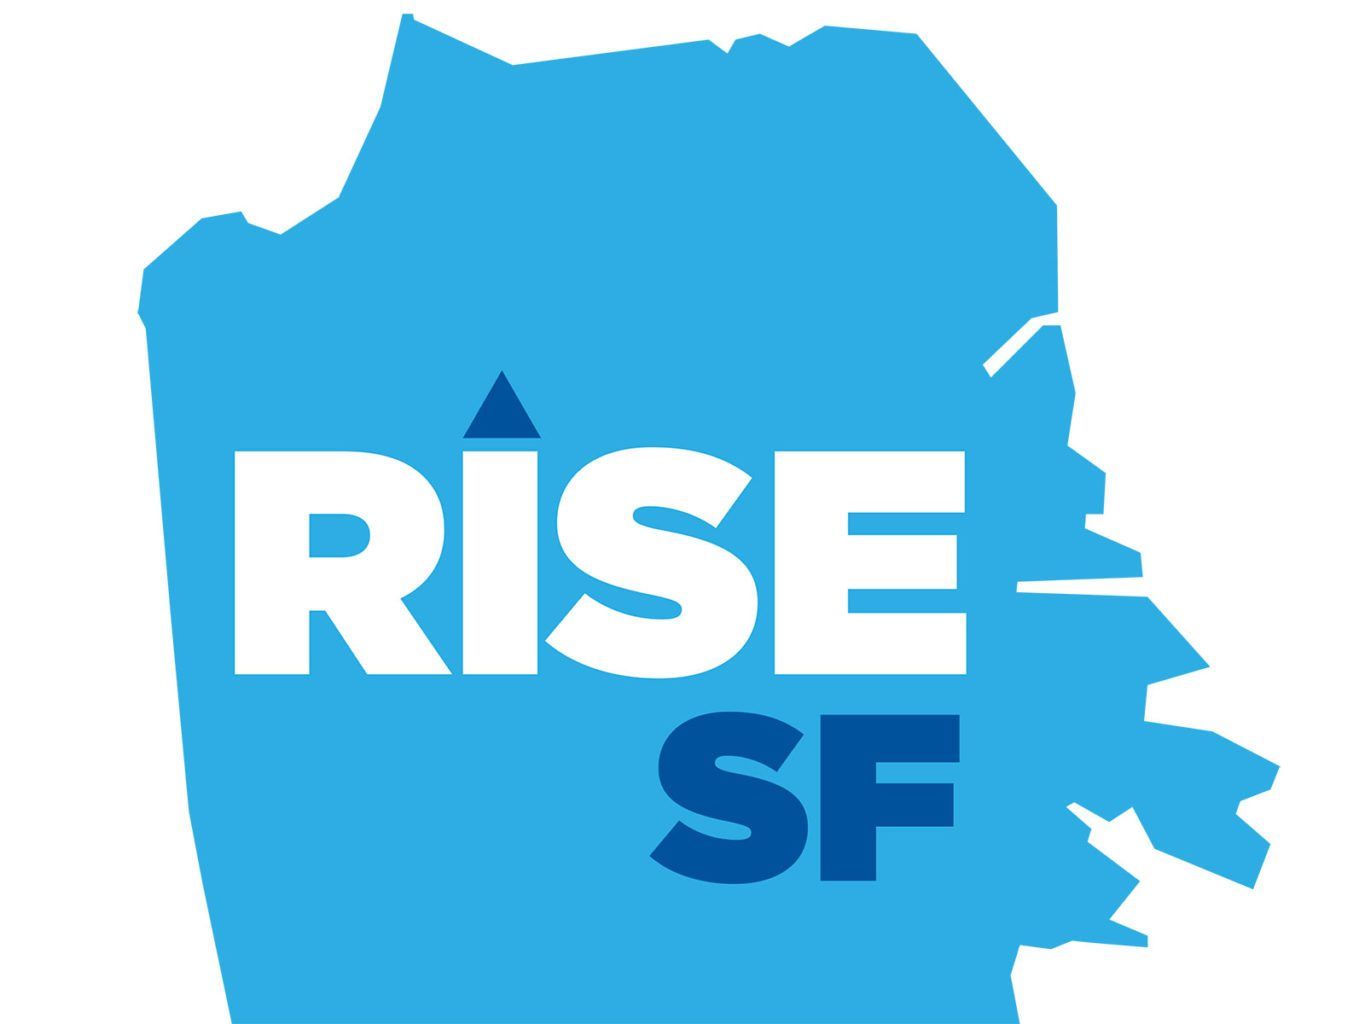 Rise SF is a newly launched pro-housing and transportation organization.